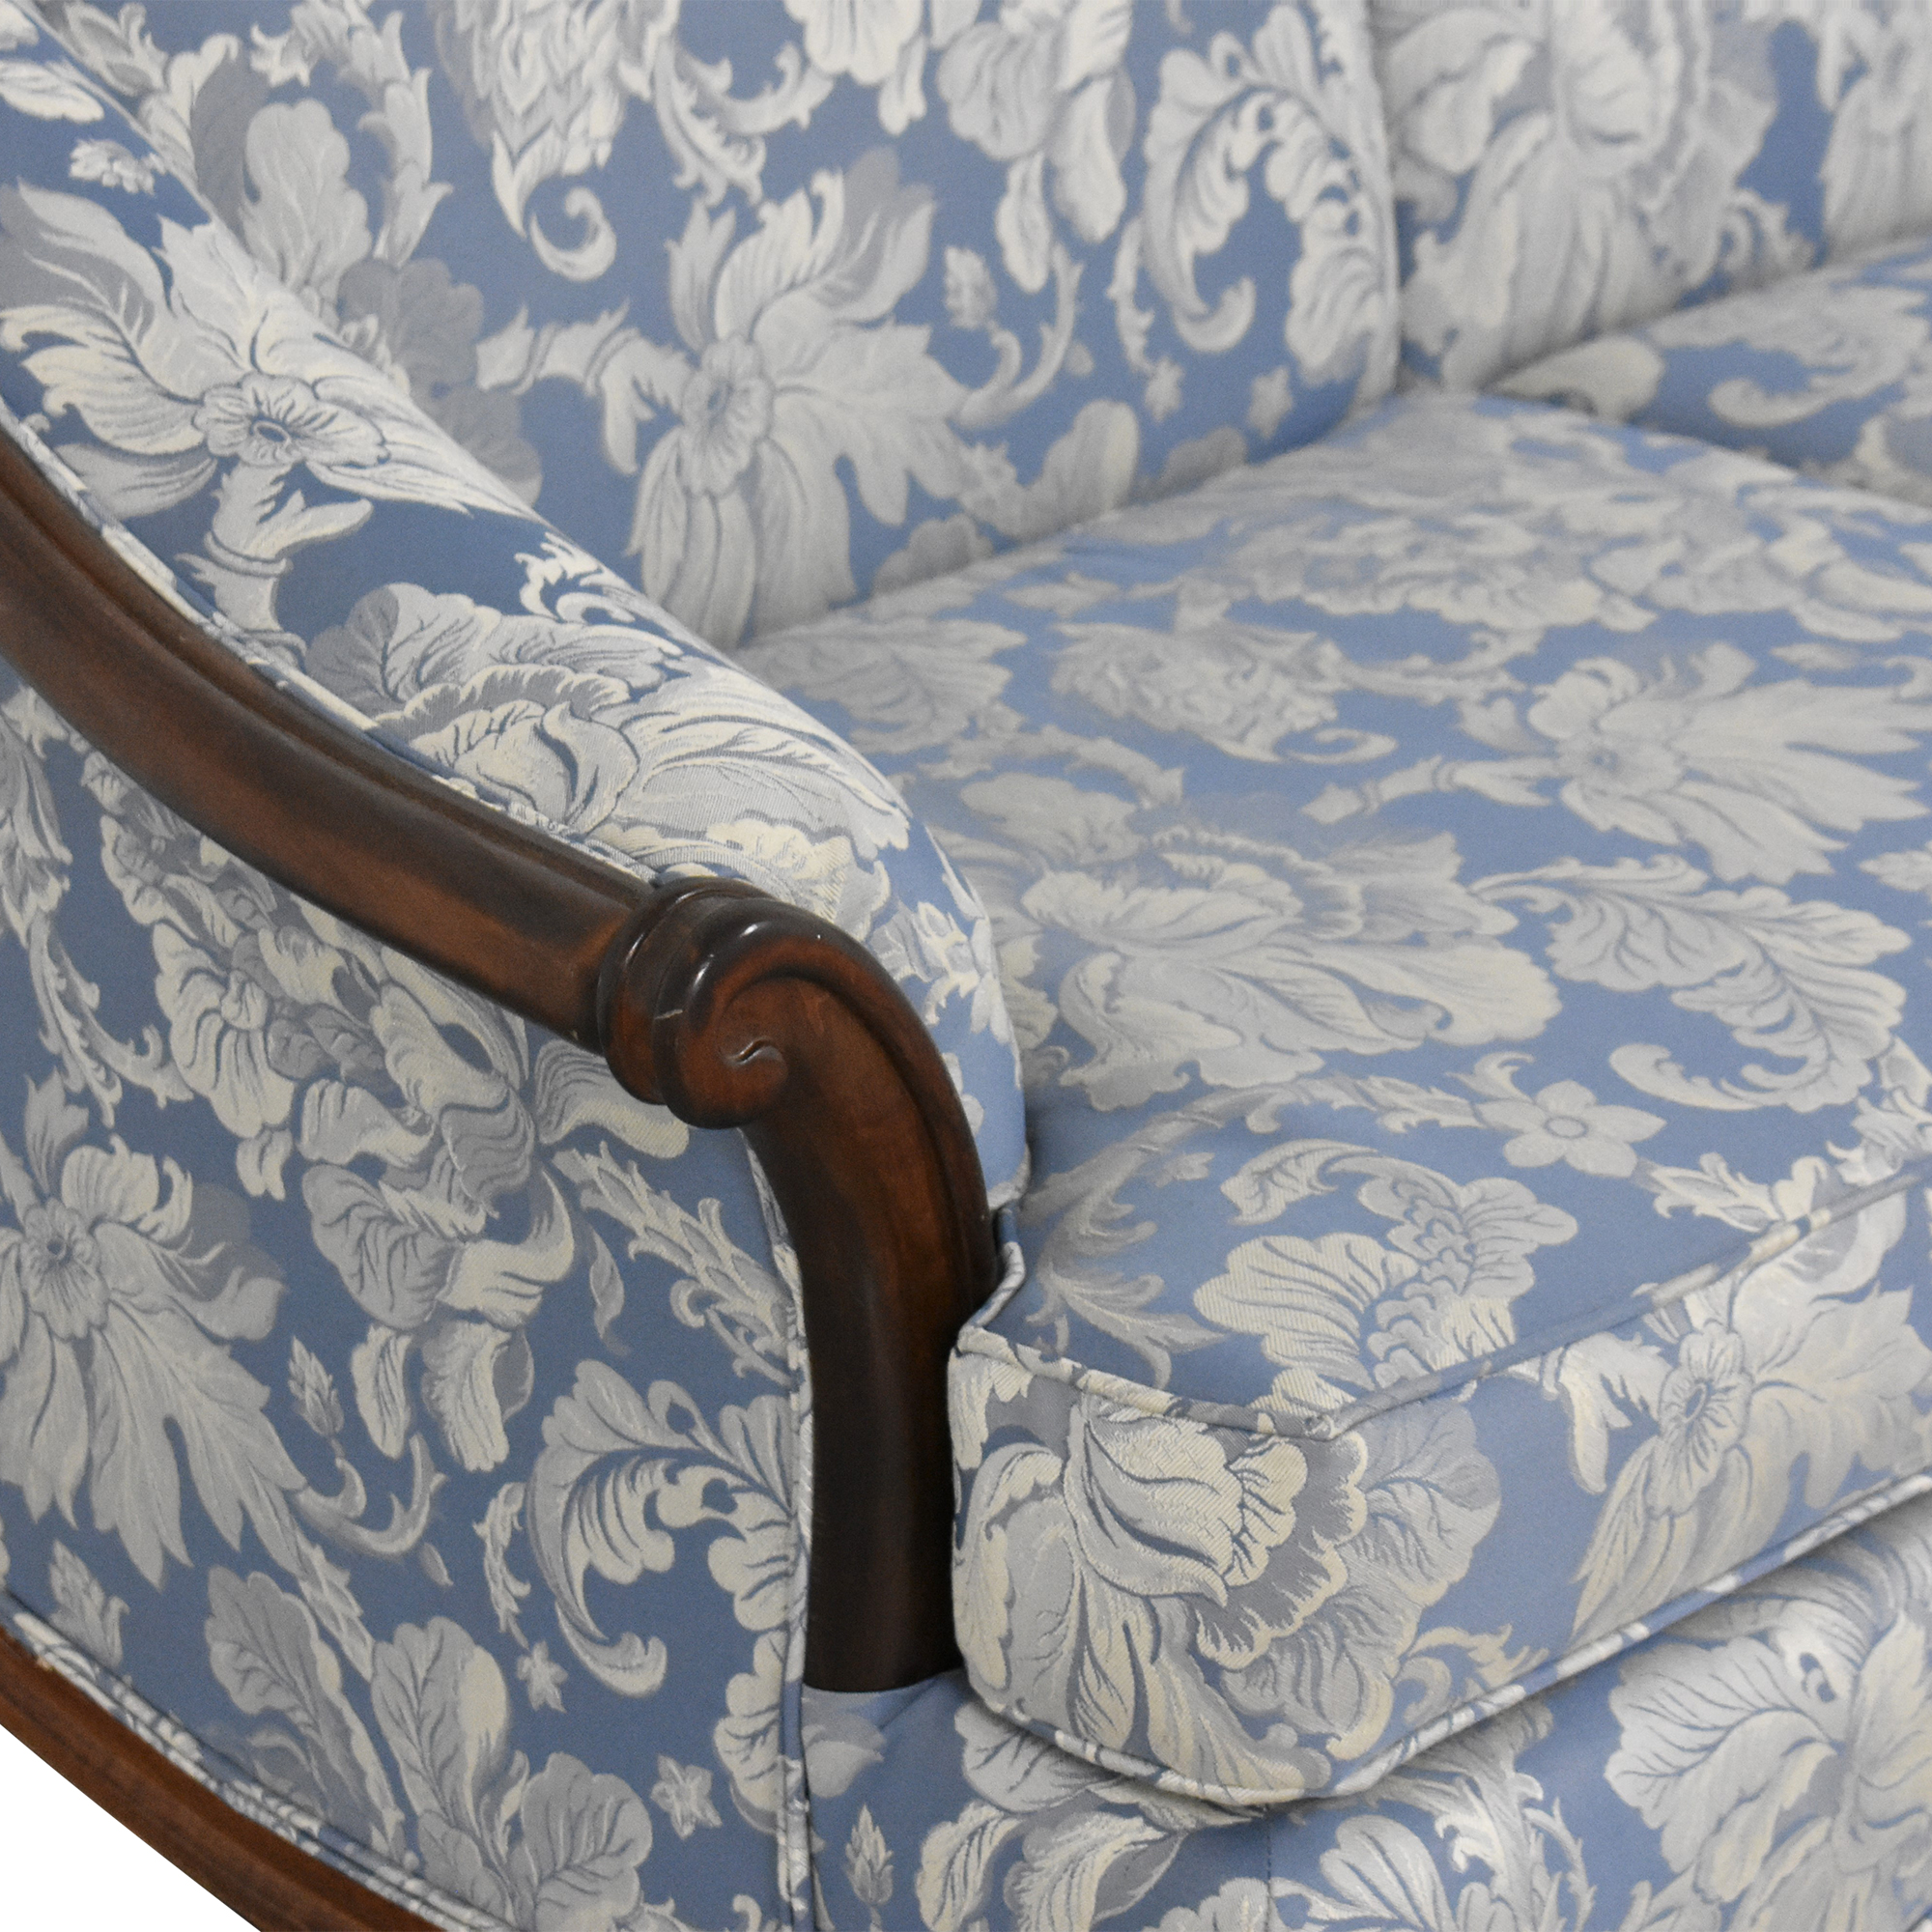 Cochrane Cochrane French Country Settee Loveseat for sale